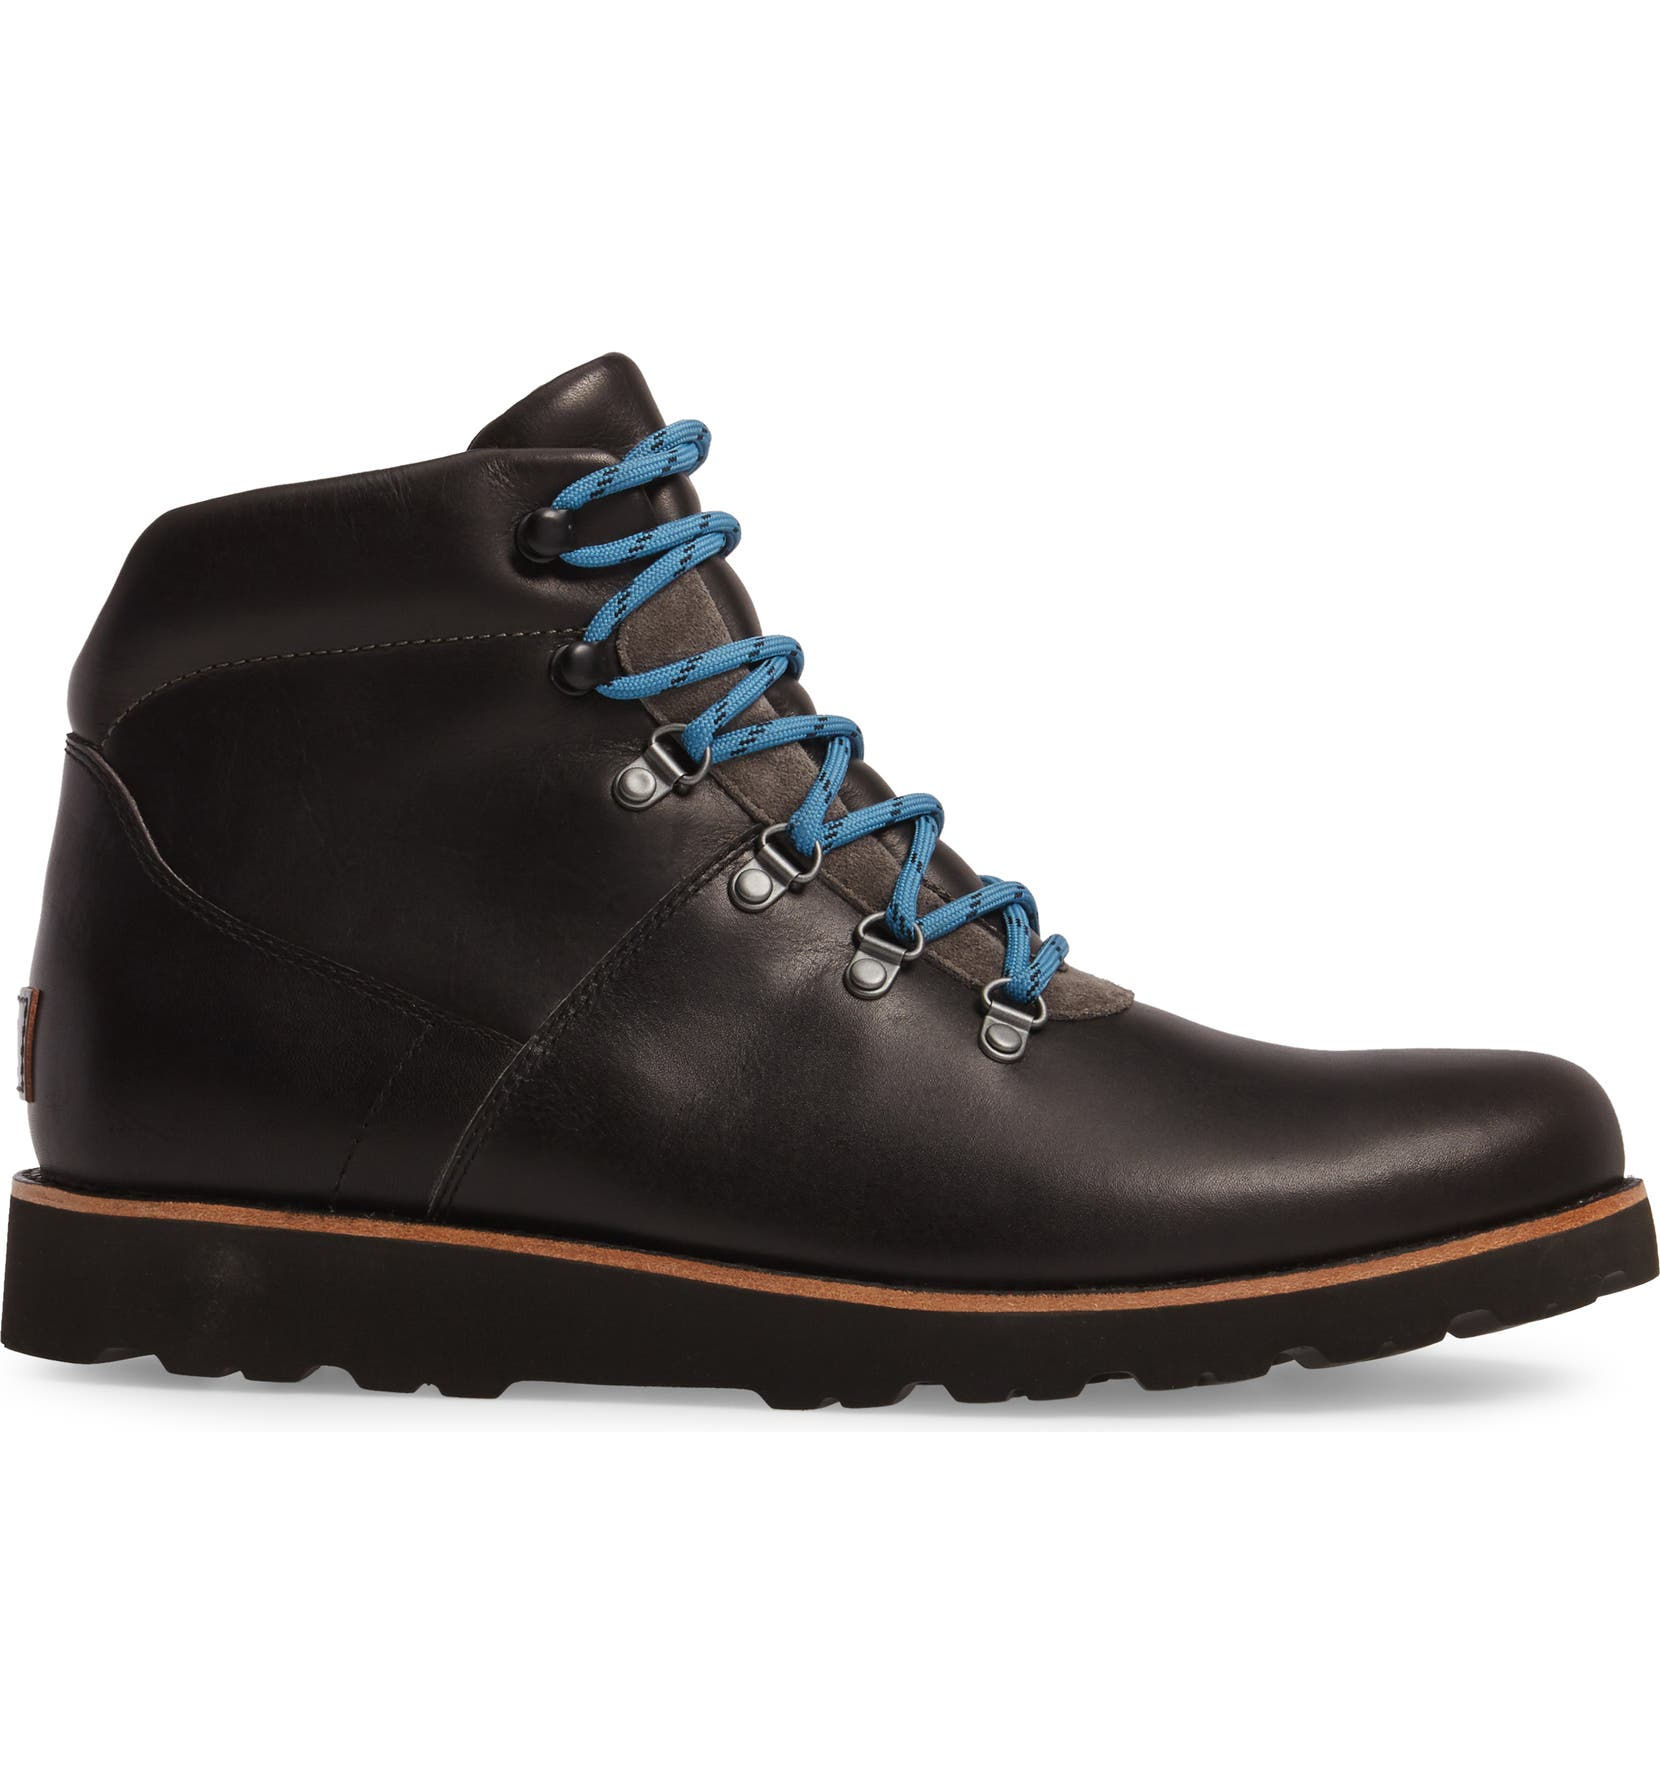 7111f33a5ce Halfstein Plain Toe Waterproof Boot